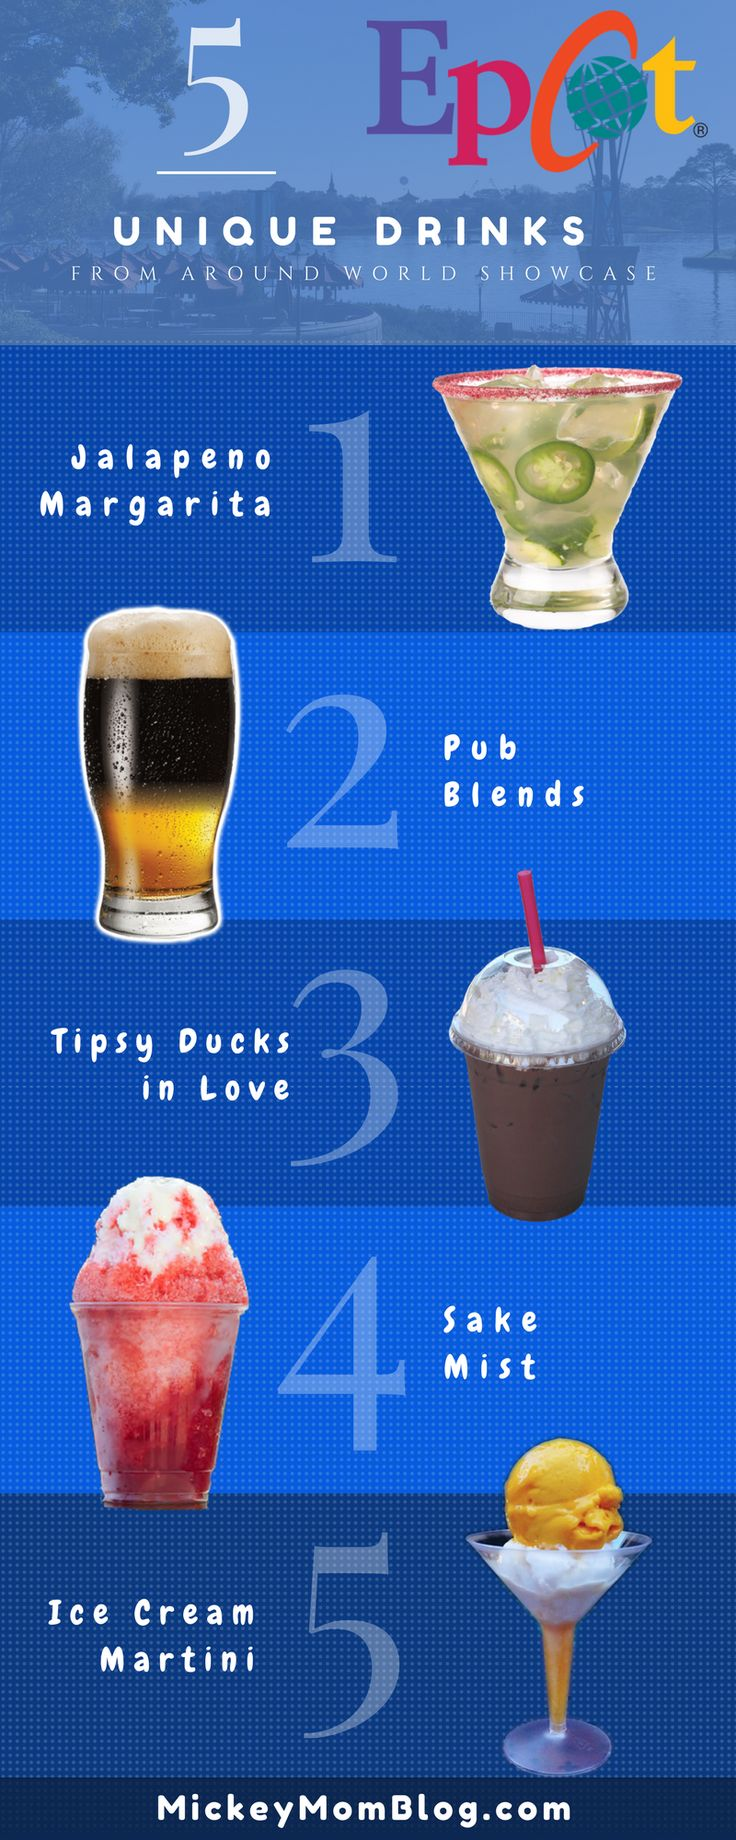 Check out our list of 5 of the more unique alcoholic beverage options available around Epcot World Showcase. Sometimes a mom (or dad) at Disney just needs a cold drink! There are tons of creative beverage options (alcoholic & non-alcoholic) throughout the Walt Disney World resort, but especially at Epcot. #disney